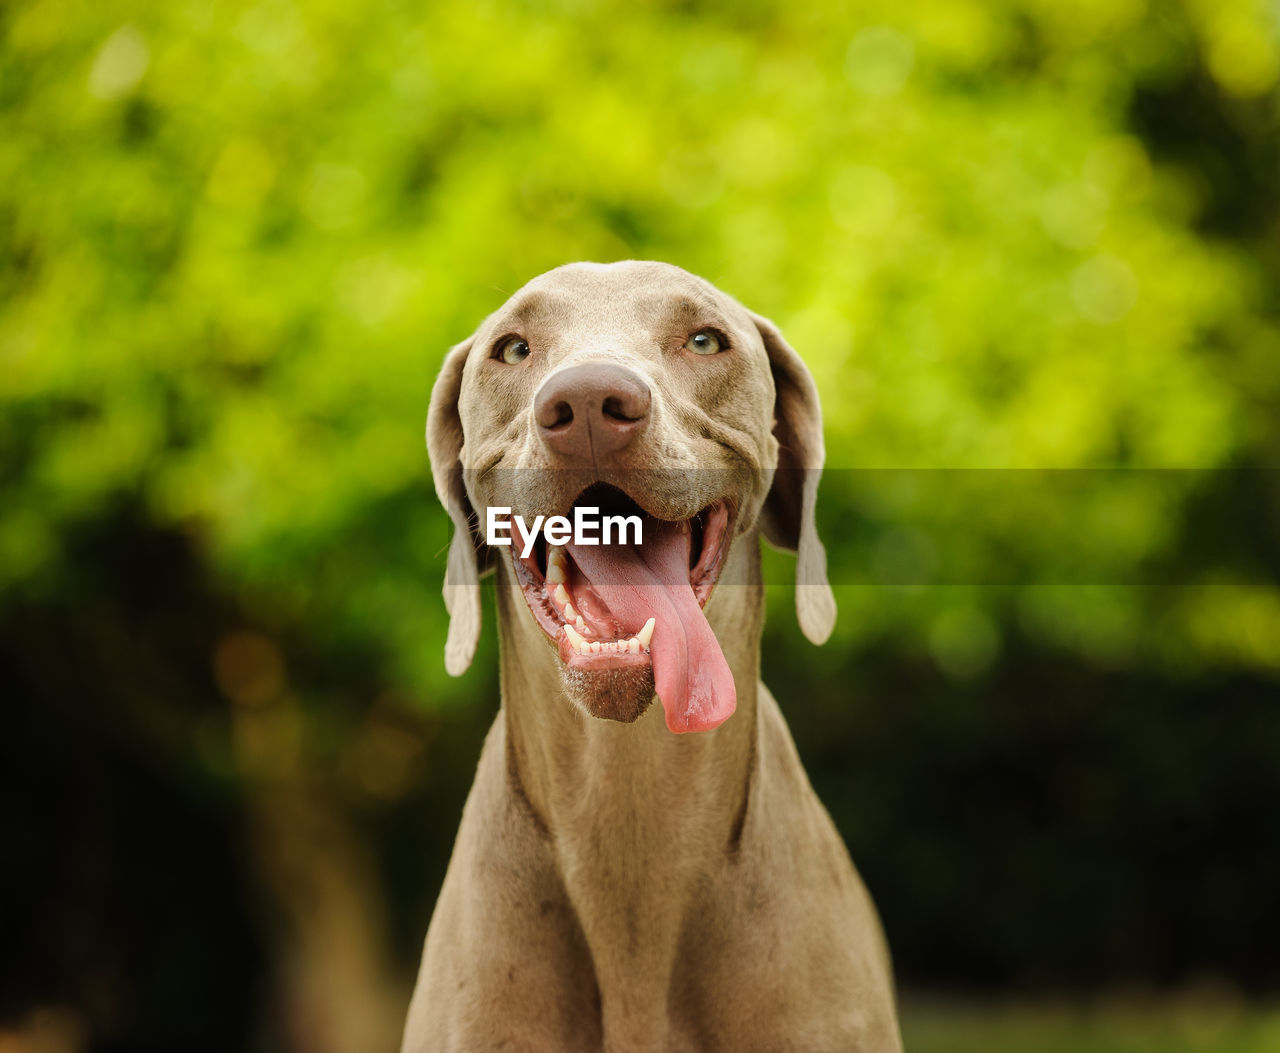 one animal, dog, canine, animal themes, domestic, pets, mammal, animal, domestic animals, portrait, weimaraner, vertebrate, looking at camera, focus on foreground, sticking out tongue, facial expression, close-up, day, no people, mouth open, panting, animal tongue, animal mouth, purebred dog